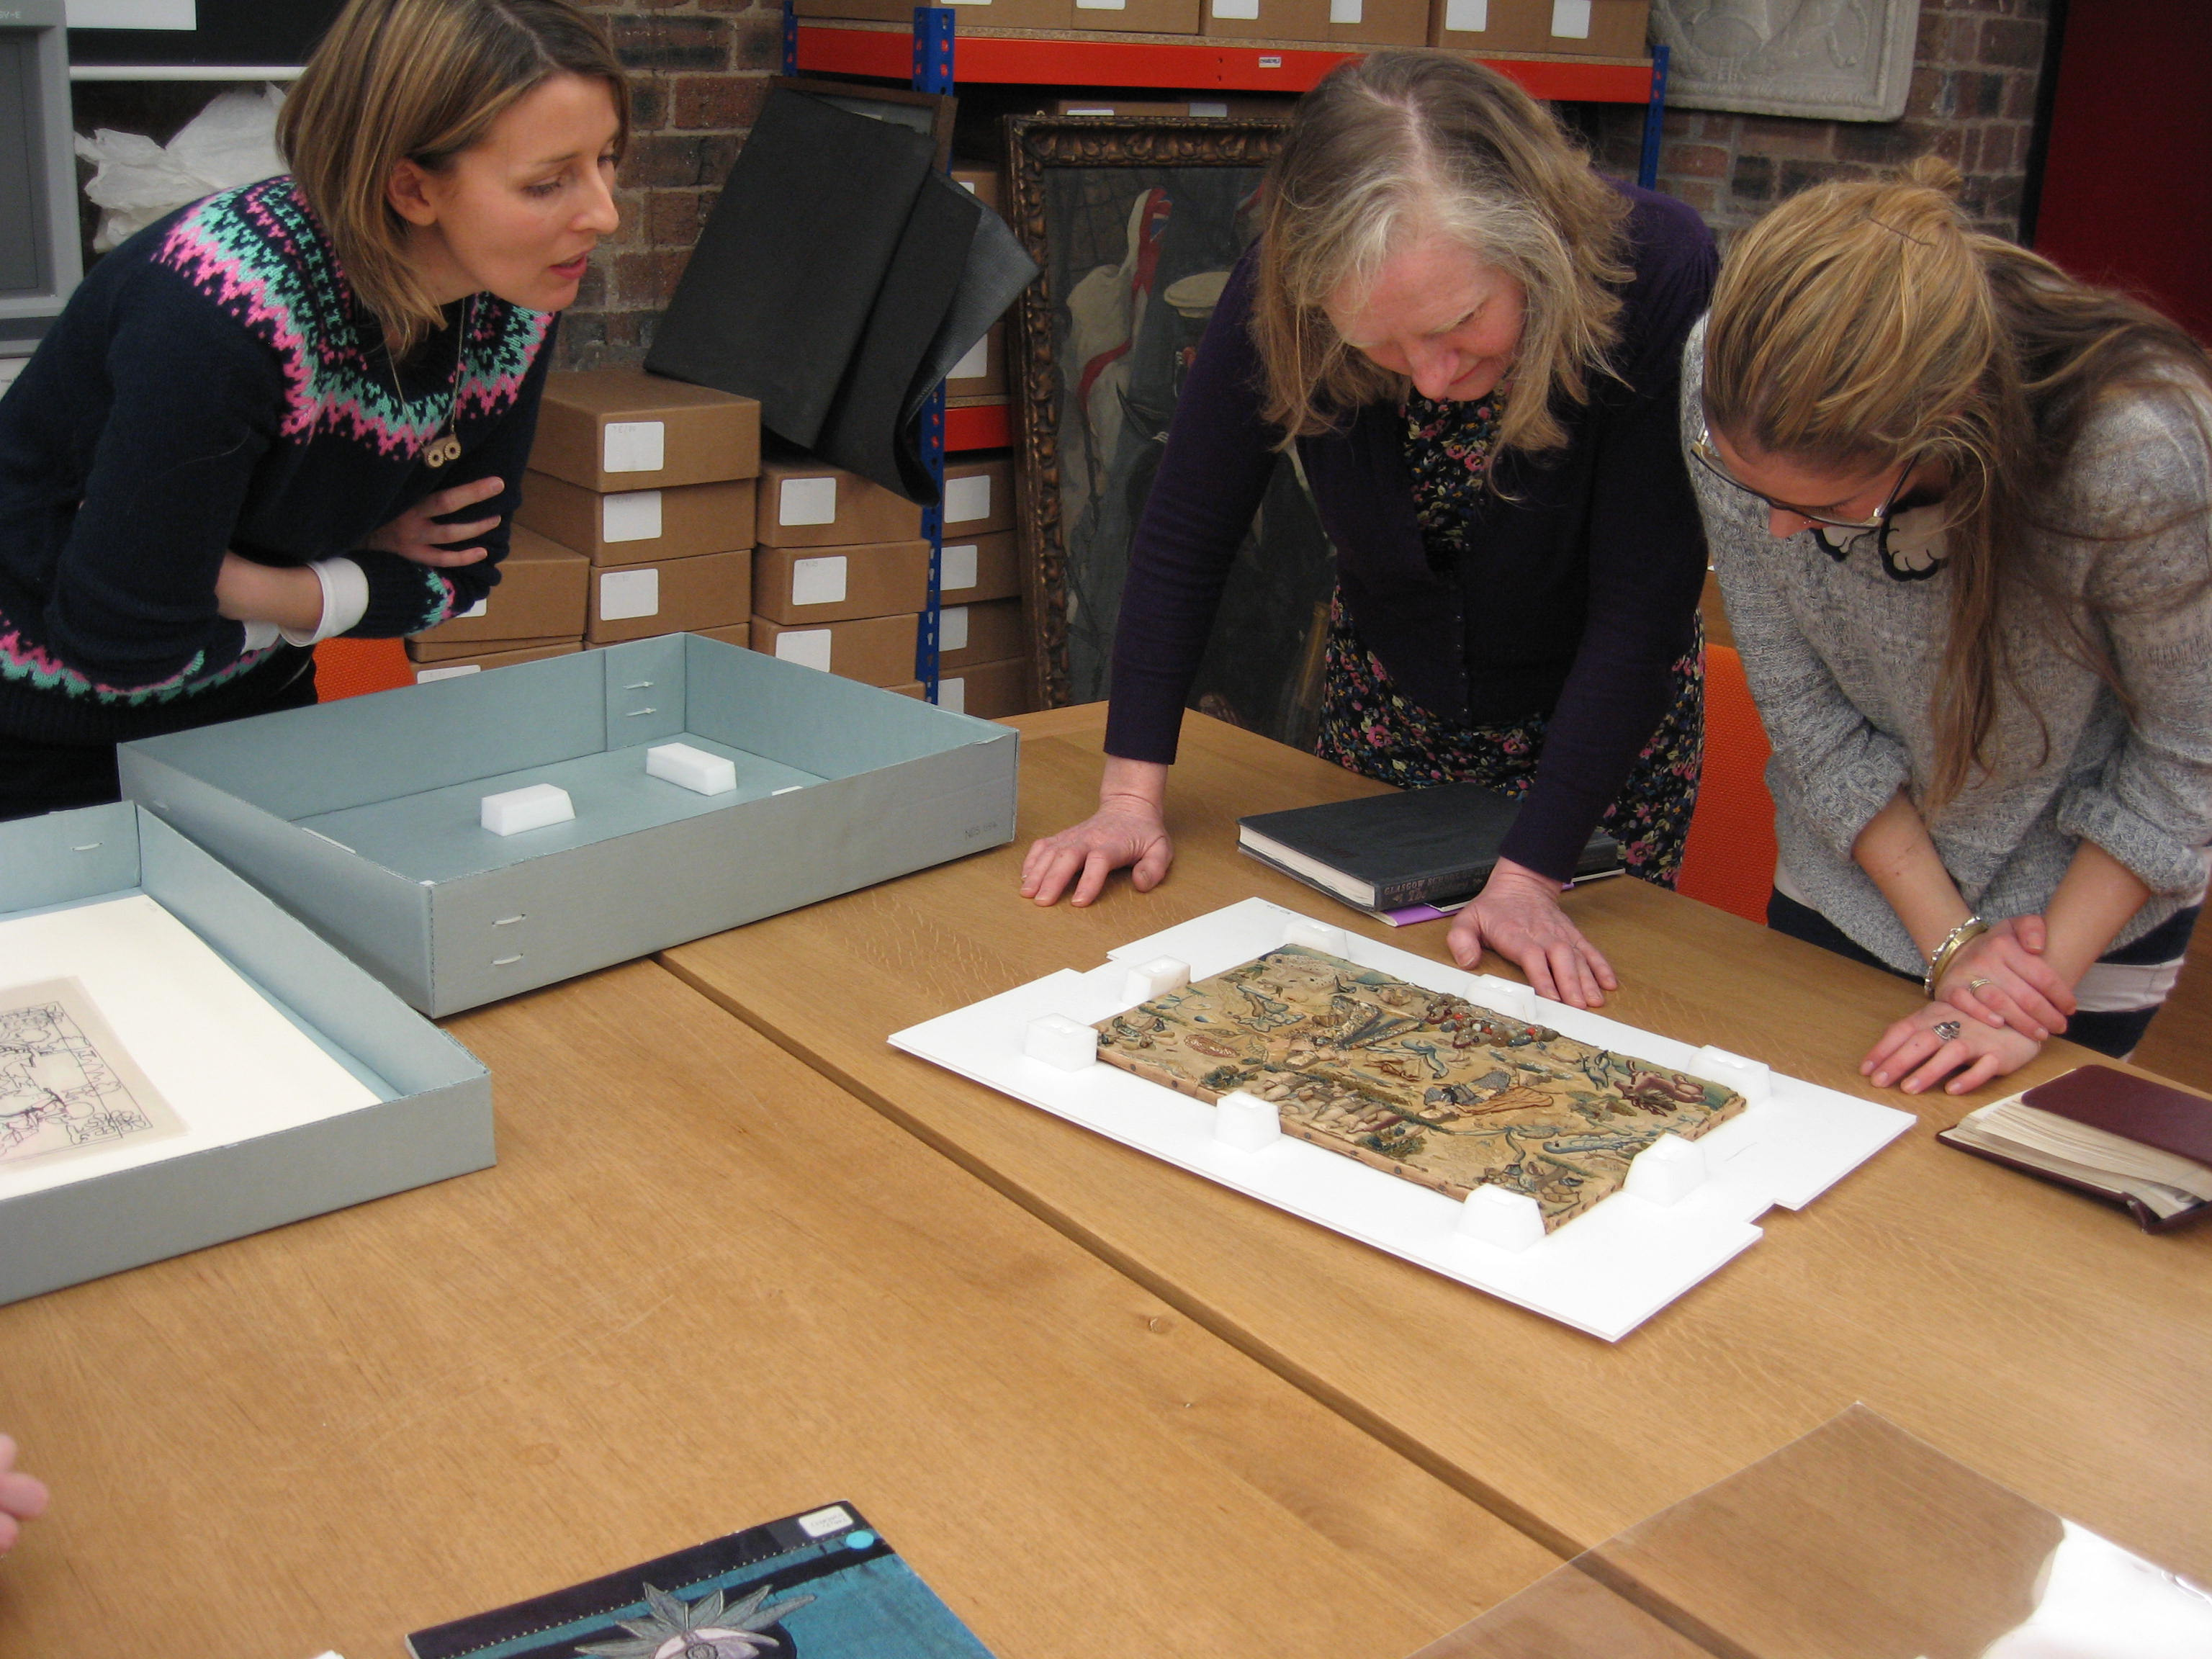 GSA's Archivist Susannah shows ECA researchers Lindy and Lucie some items from our Needlework Development Scheme textile collection.